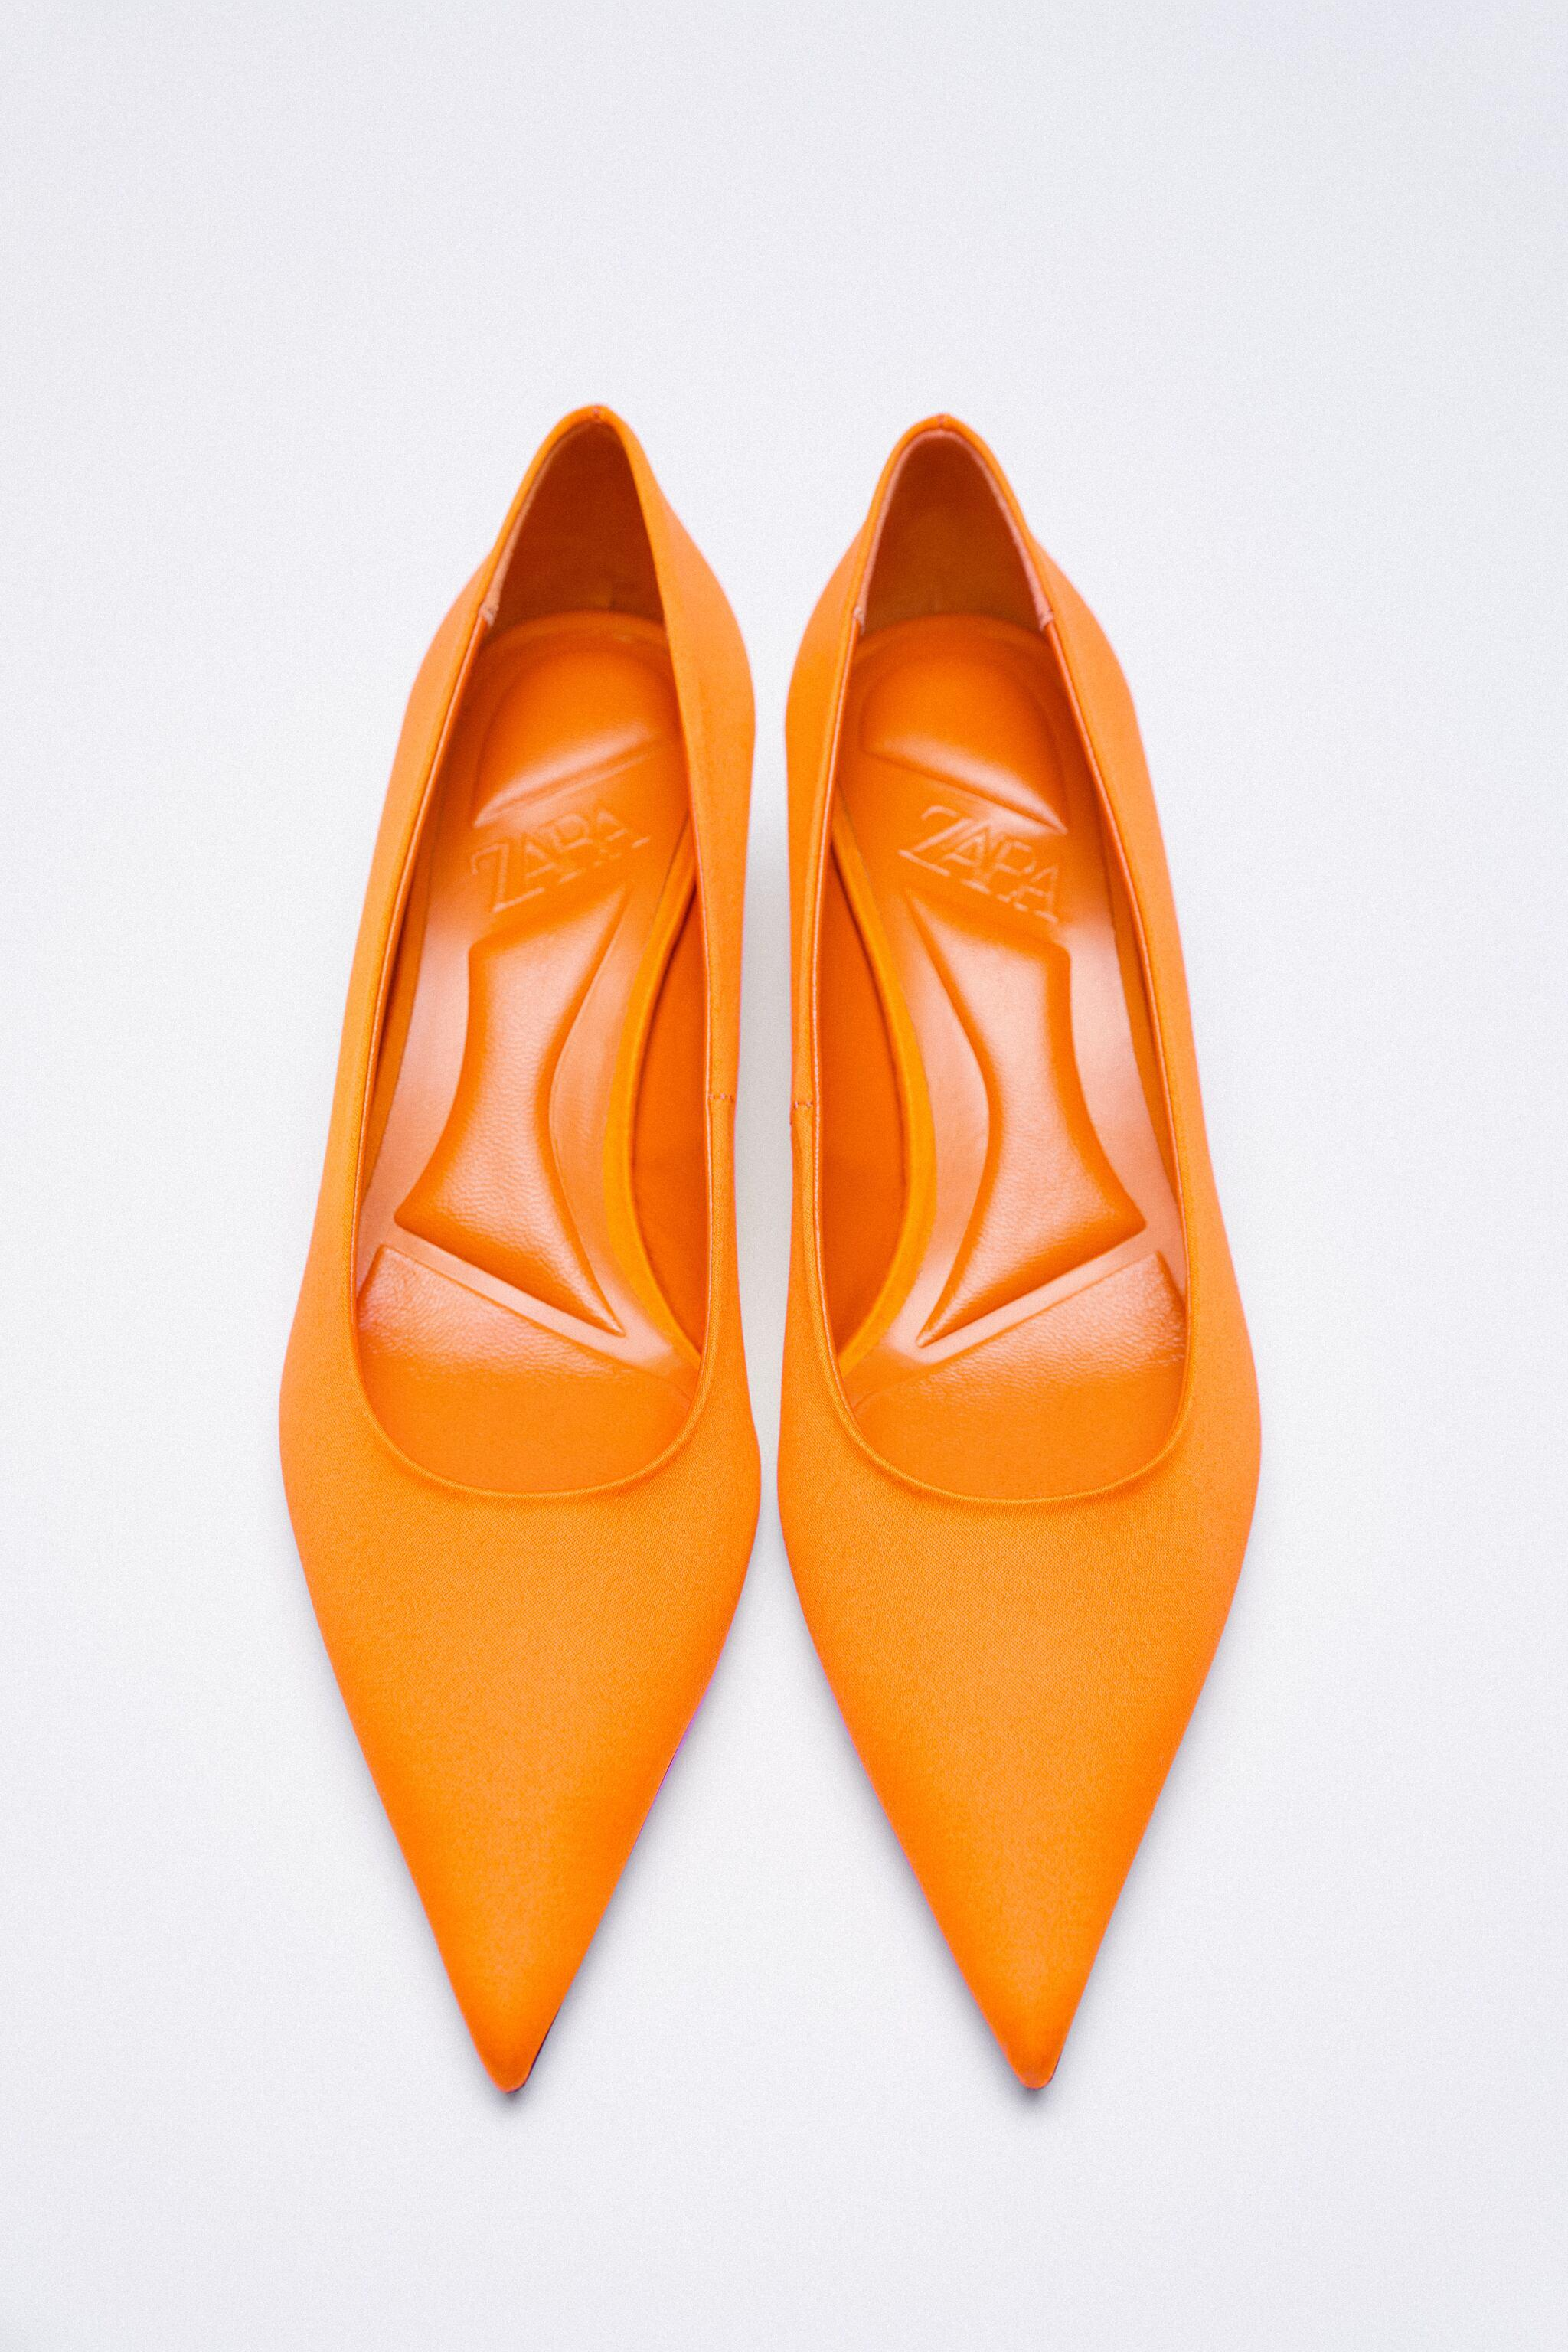 SATIN EFFECT POINTED TOE HEELS 10